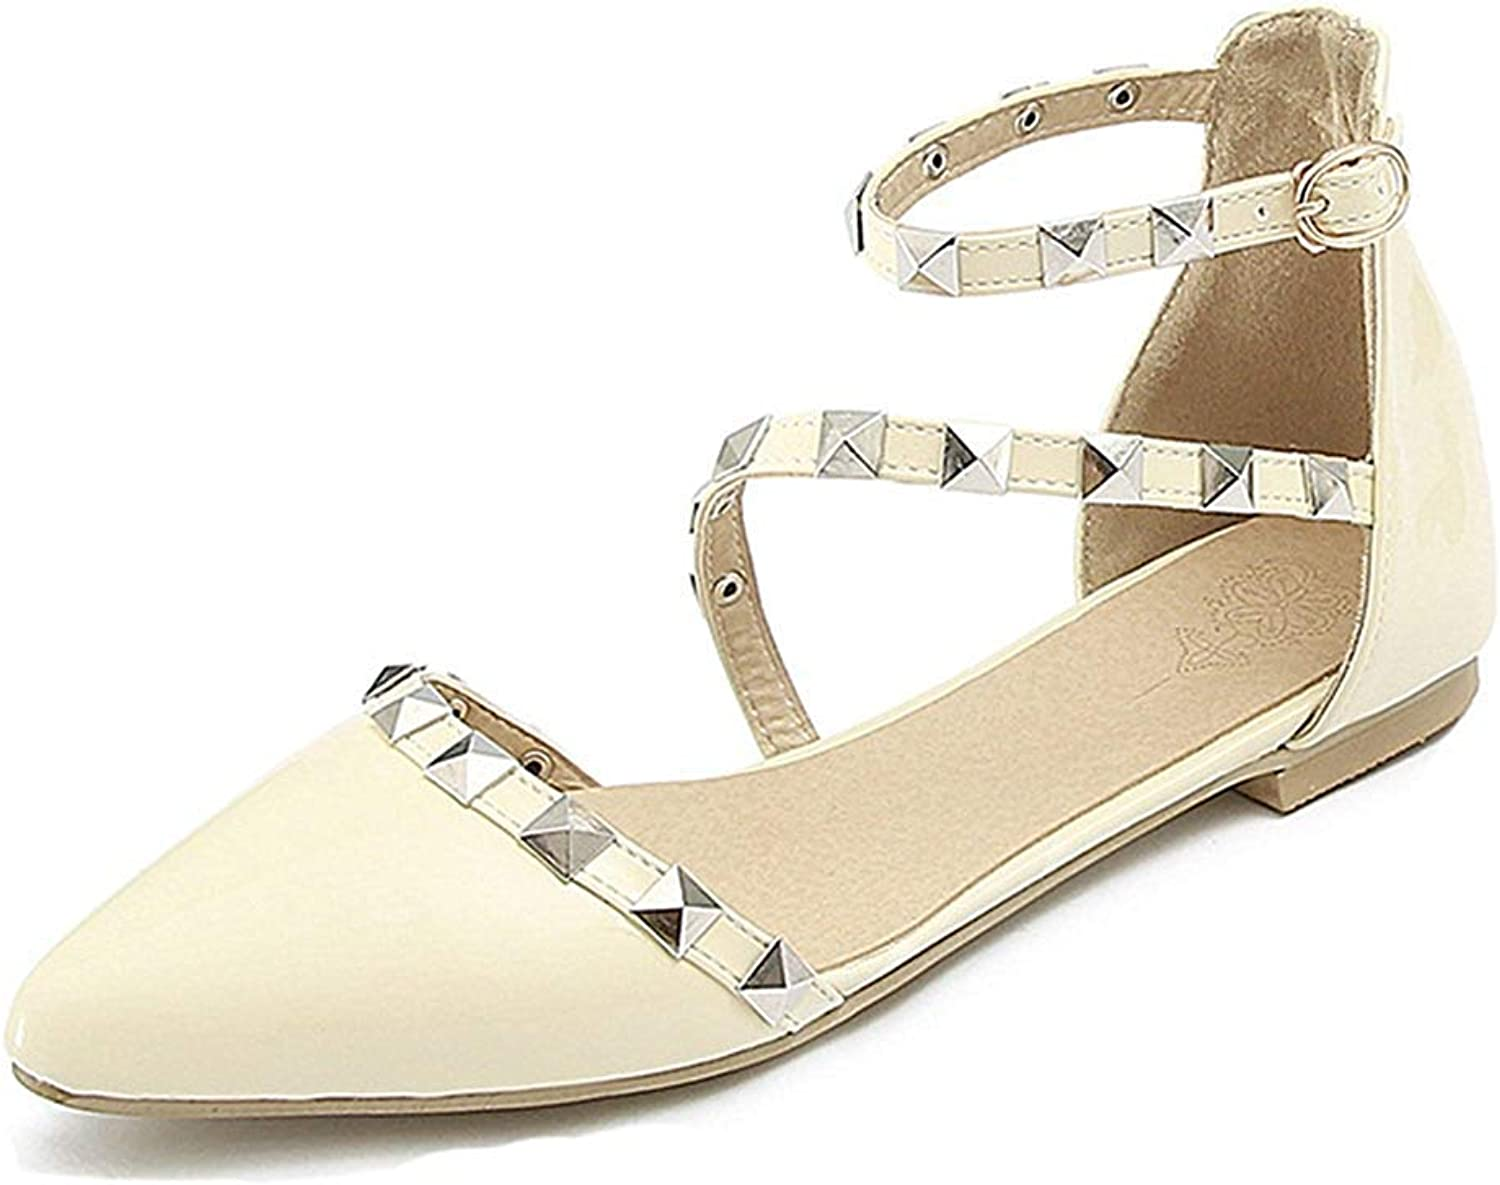 Unm Women's Closed Toe Flat Sandals with Studs - Burnished Ankle Strap - Comfort Pointed